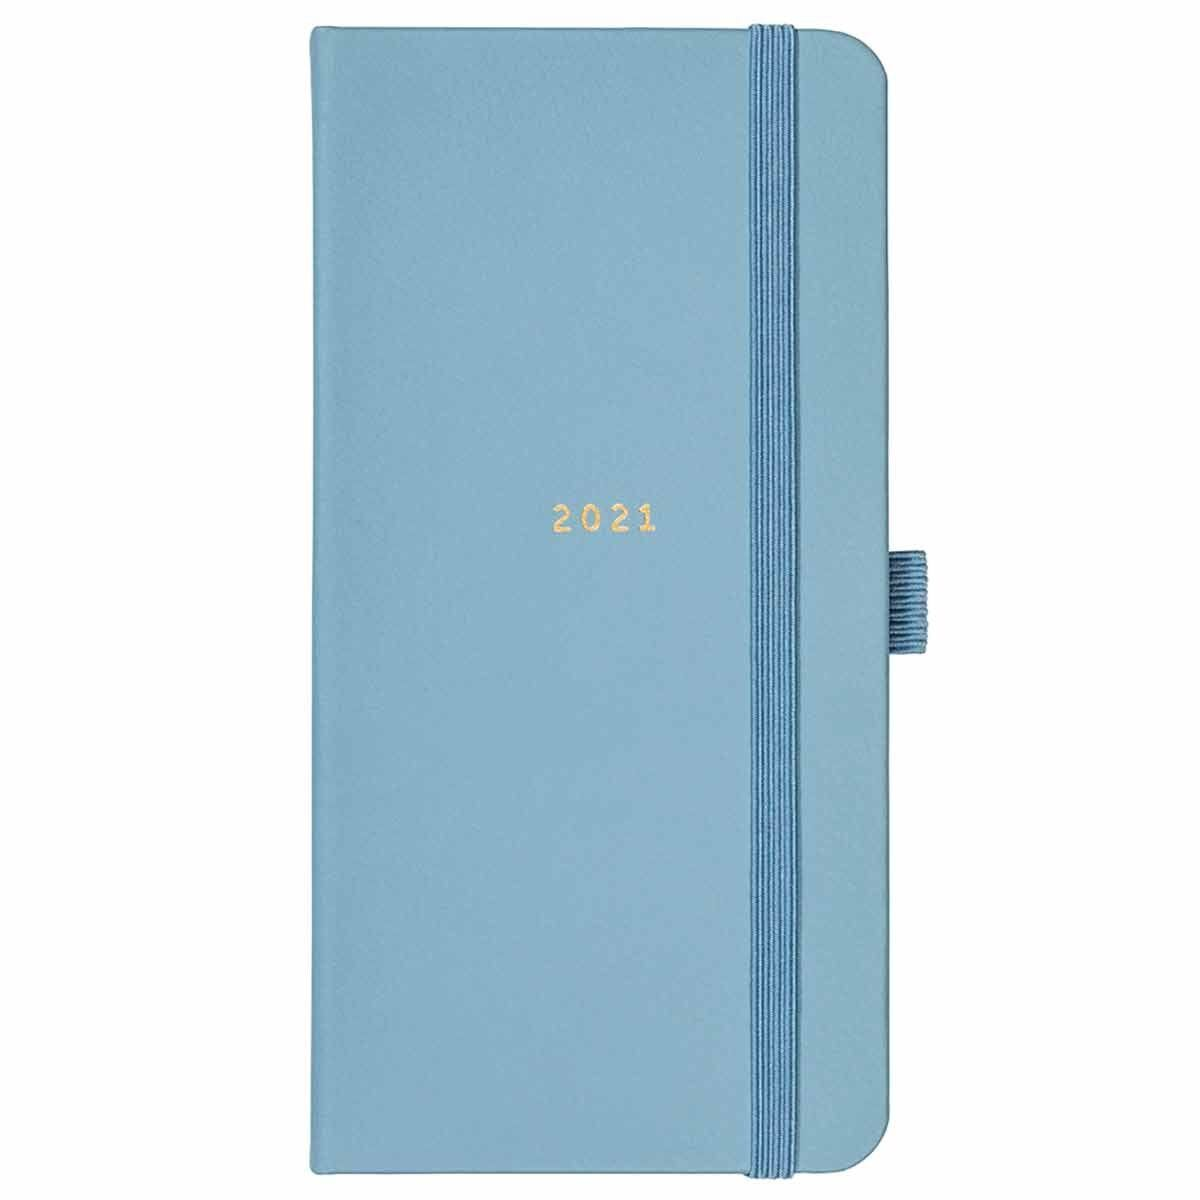 Busy B Slim Diary Week to View 2021 Blue